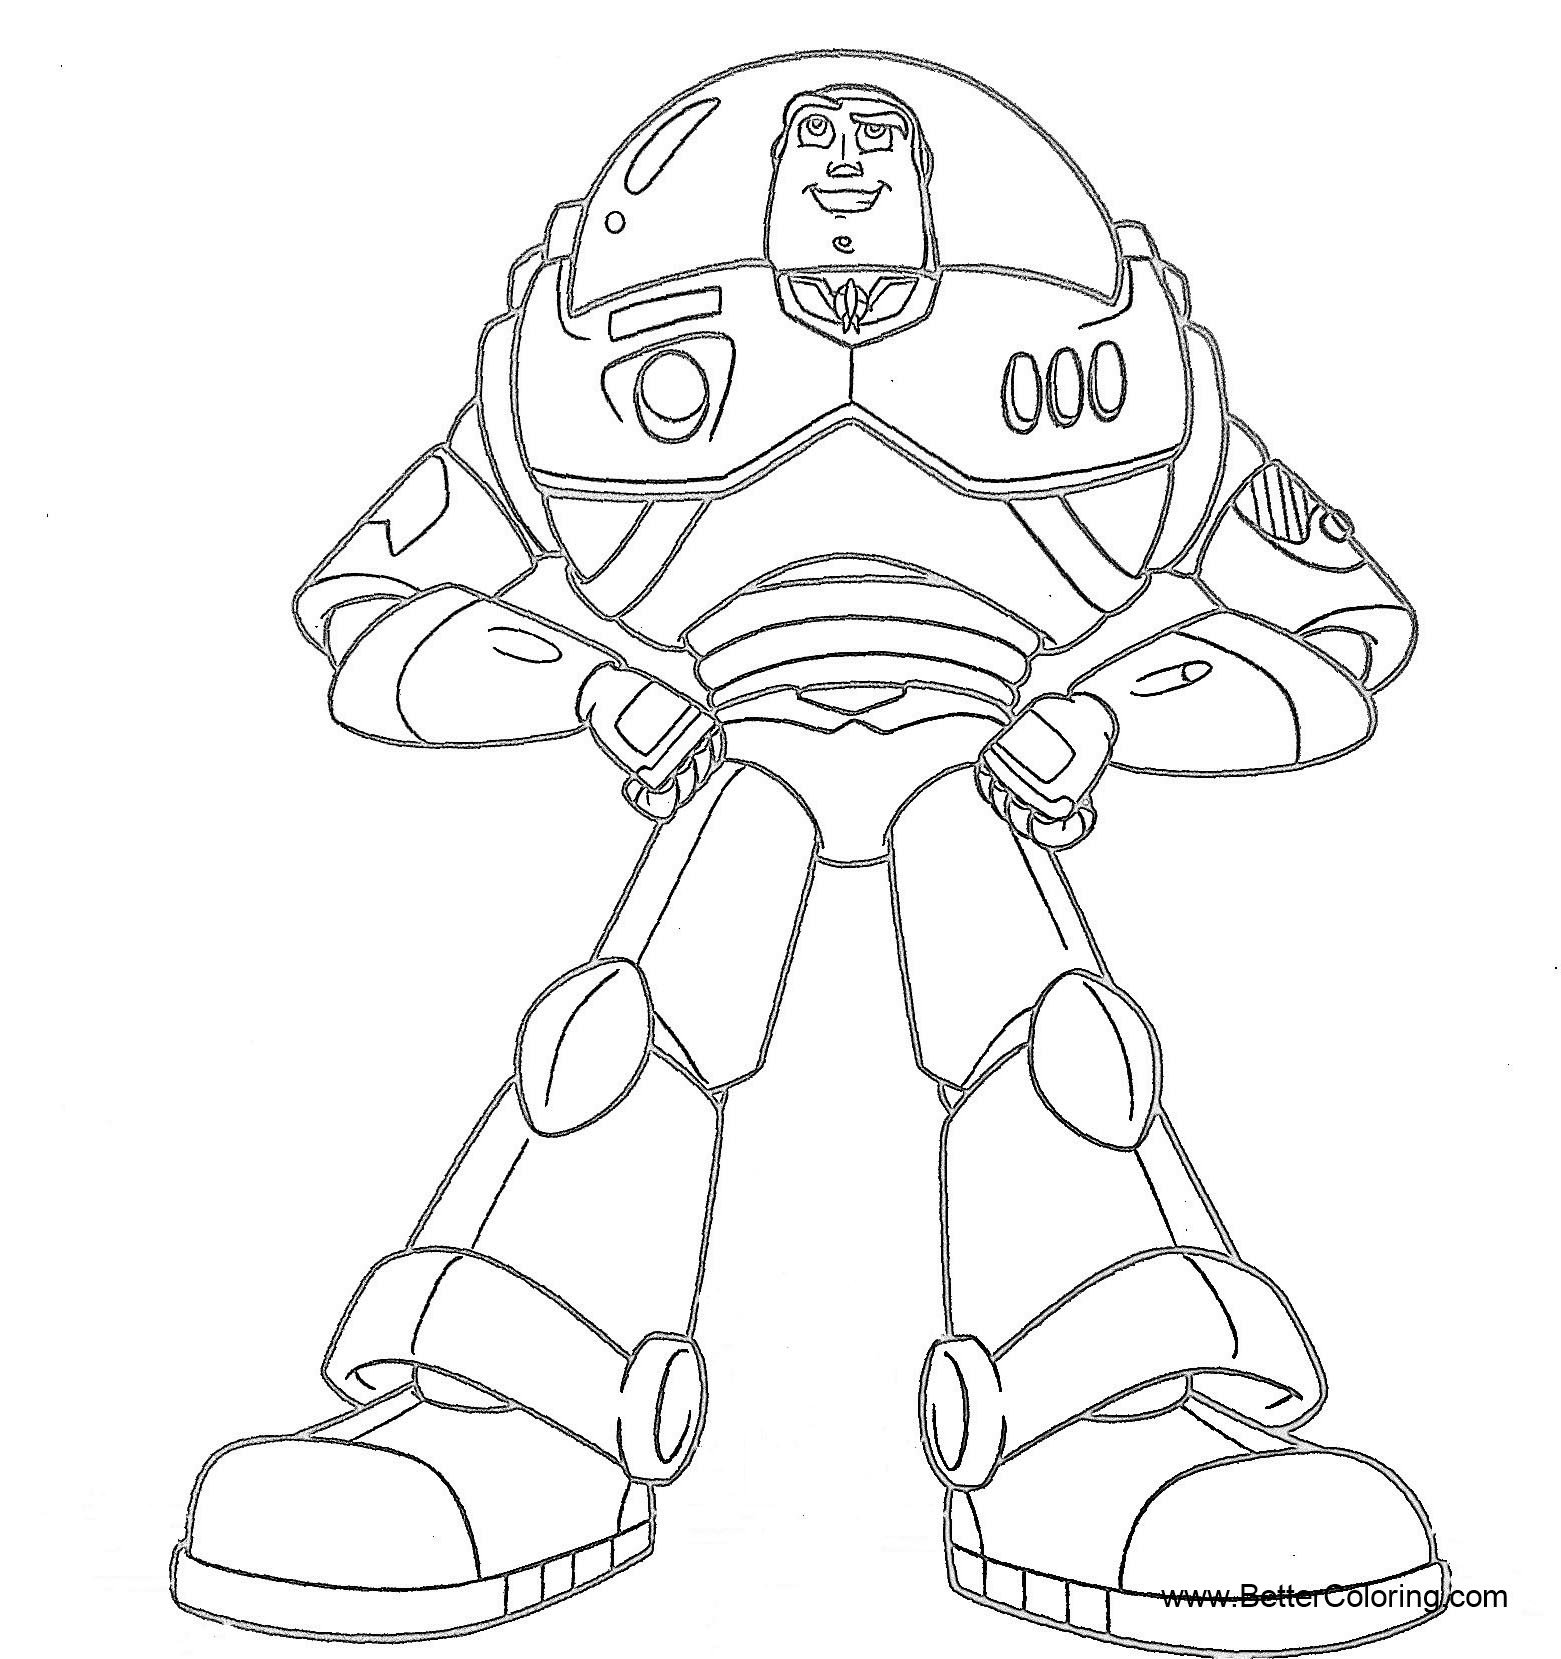 simple buzz lightyear coloring pages - photo#5